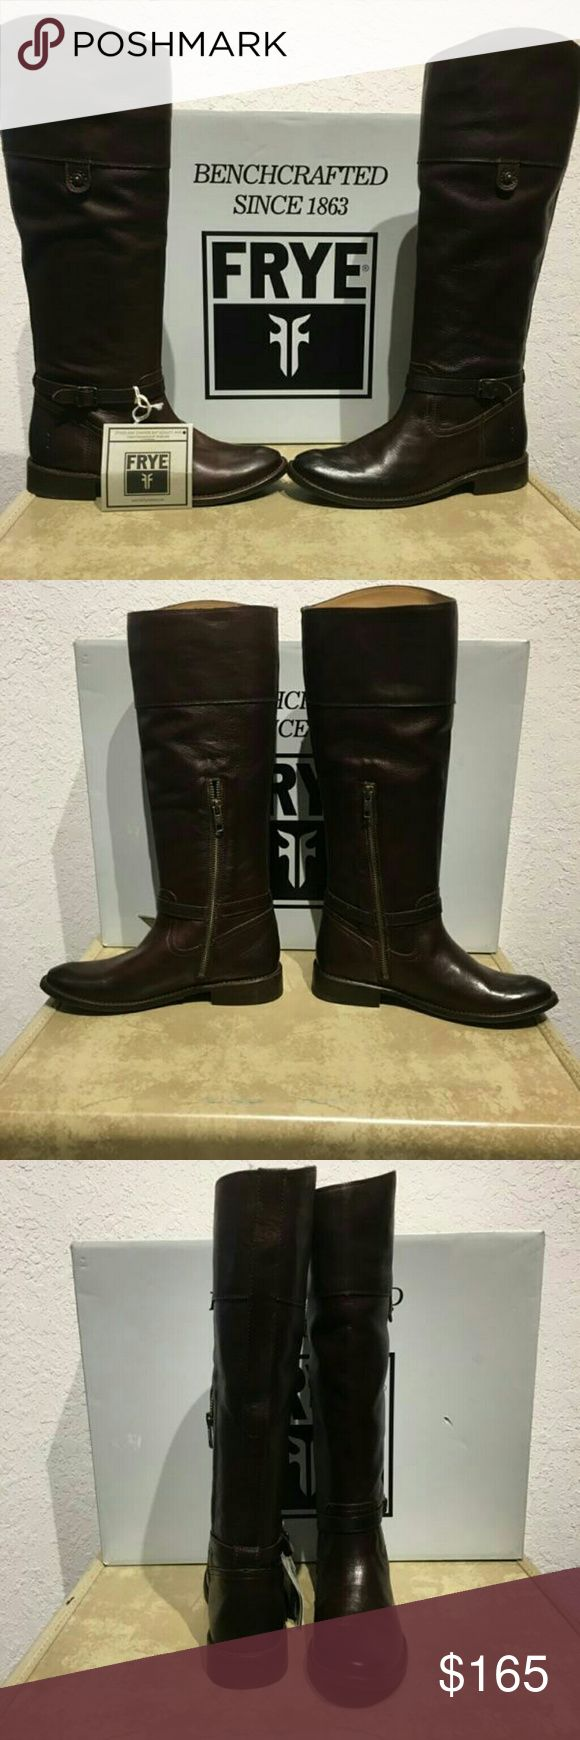 """Frye Women's Shorey Rivet Tall Brown Leather Boots This classic tall leather boot is a fall stable. It has an equestrian-inspired design with a rounded toe, low heel and includes buckle and rivet accents. The boot is a soft leather with an inside zipper for a smoother and more secure fit to your leg. This item is new in box.  Measurements Boot Size: 6 Circumference: 15"""" Shaft Height: 14"""" Heel Height: 1"""" Frye Shoes Heeled Boots"""